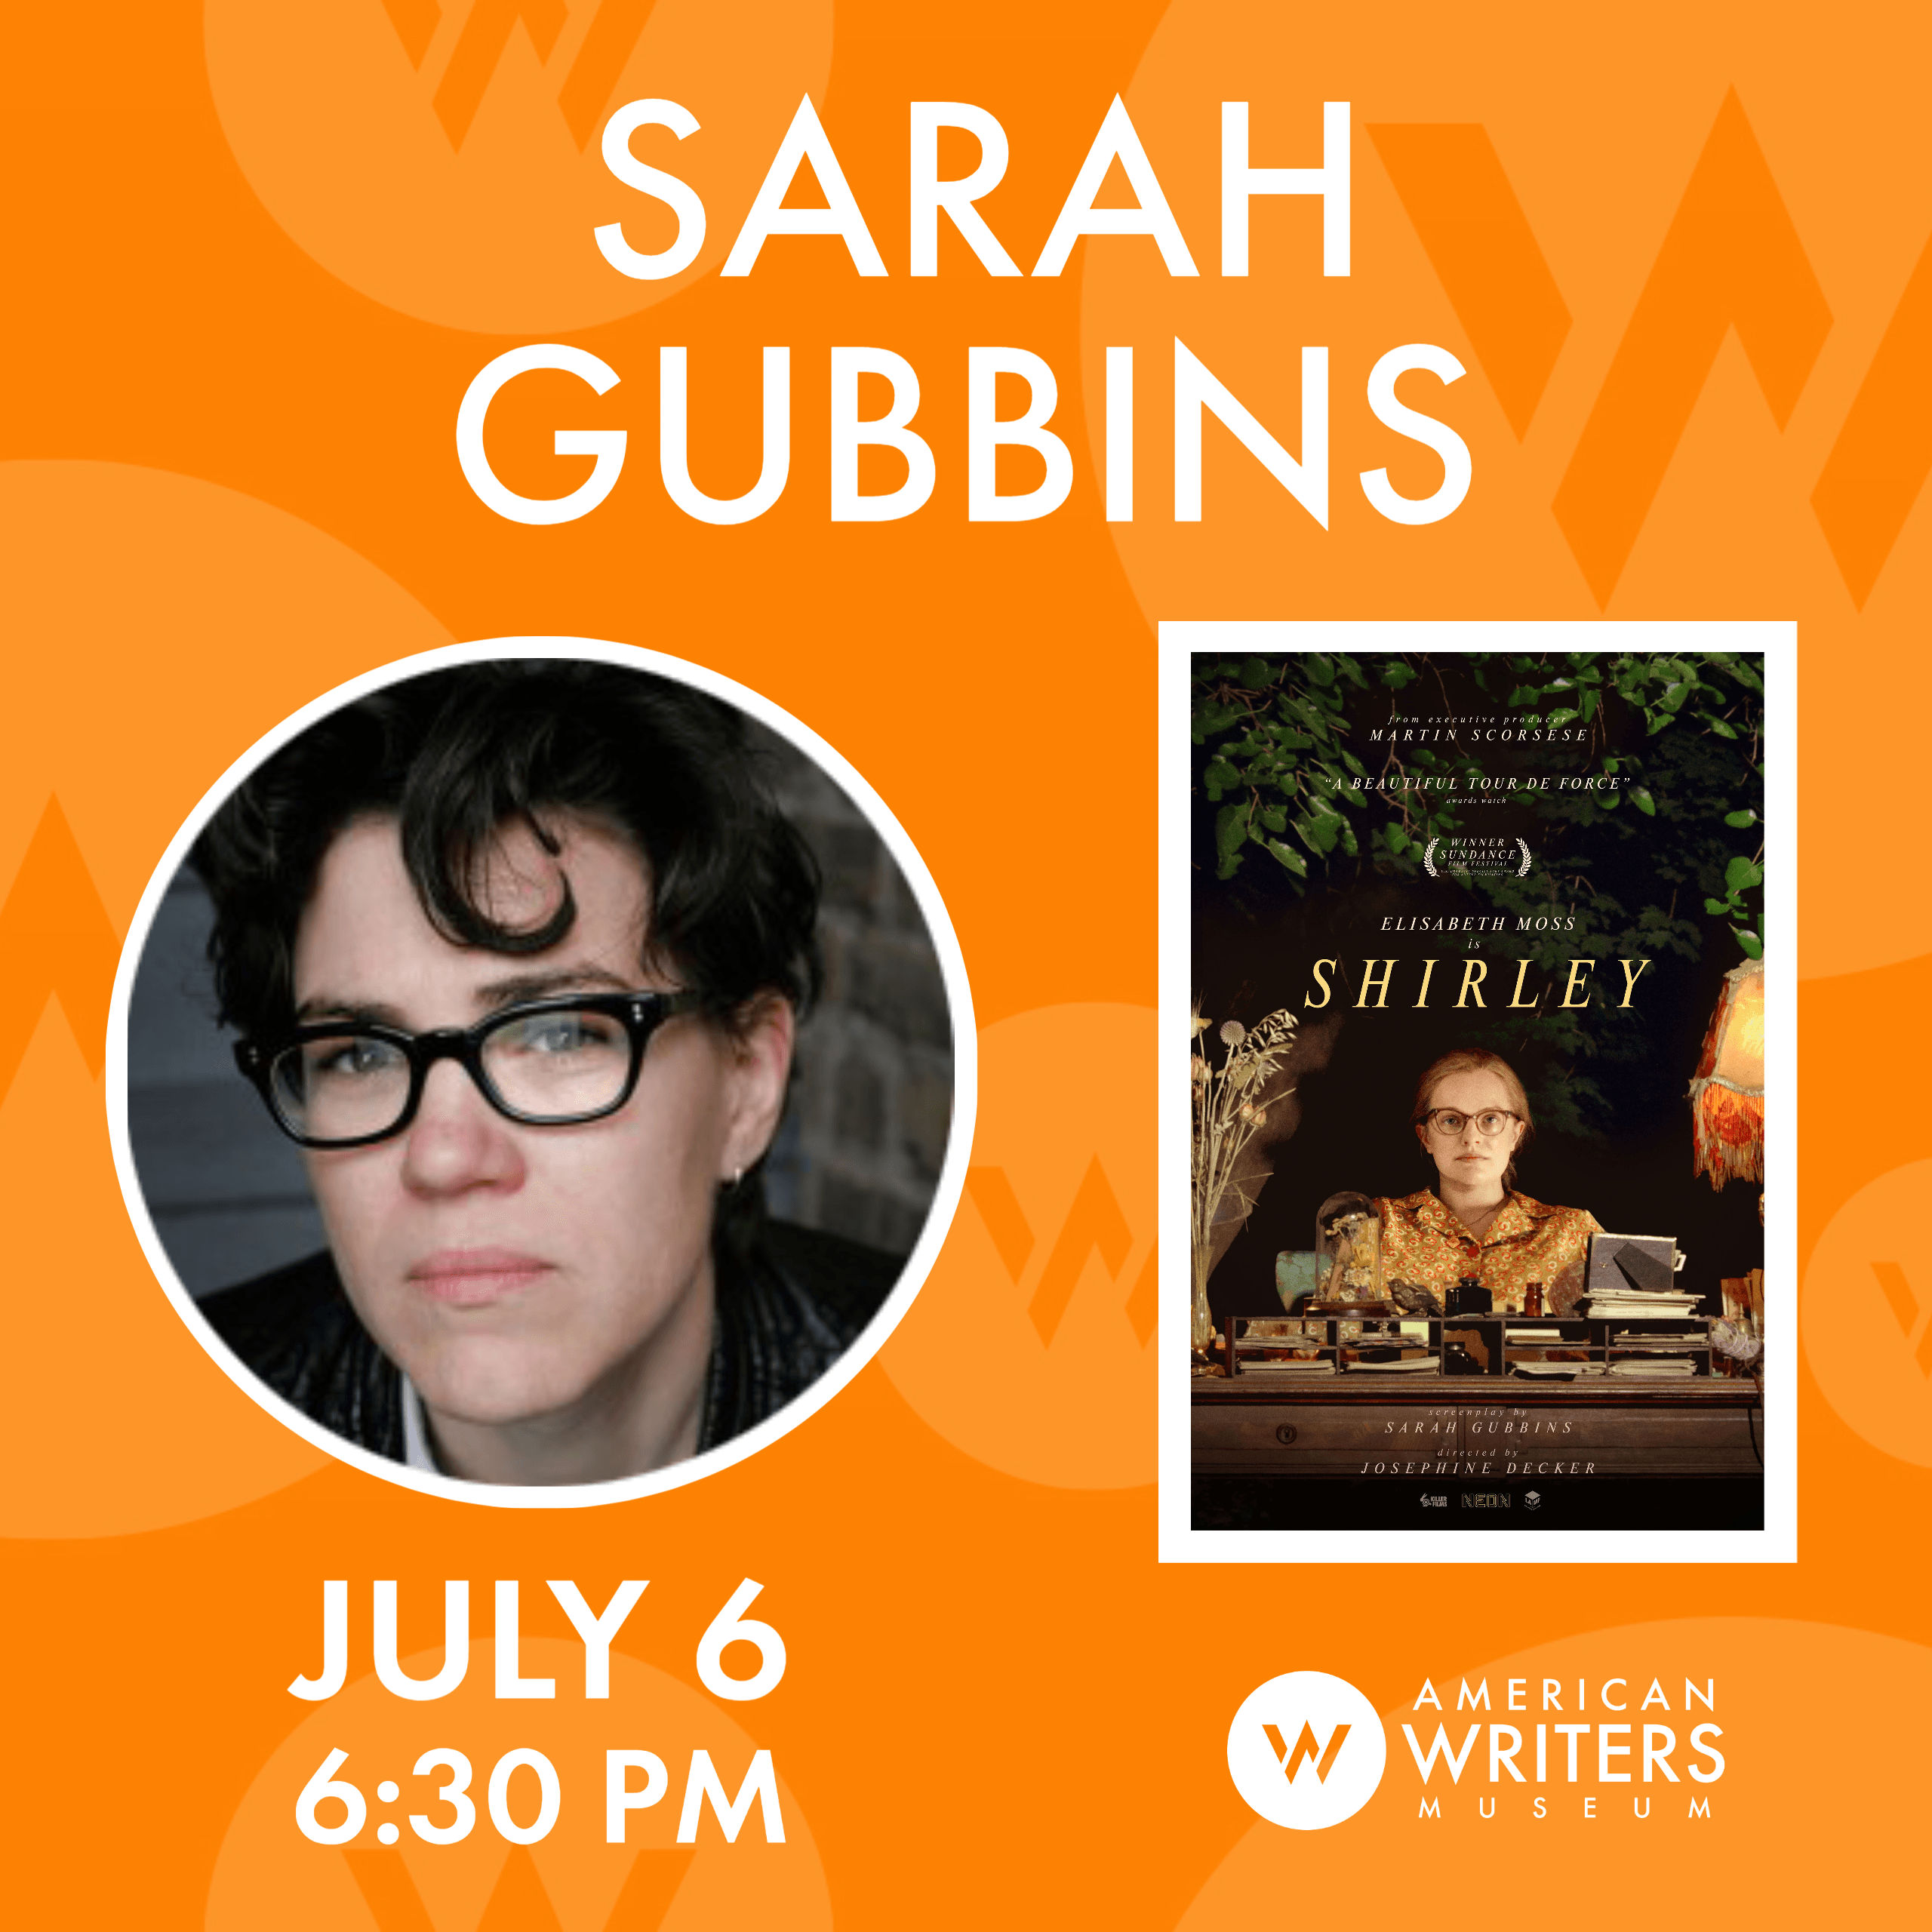 American Writers Museum presents a conversation with screenwriter Sarah Gubbins about her work on the film Shirley